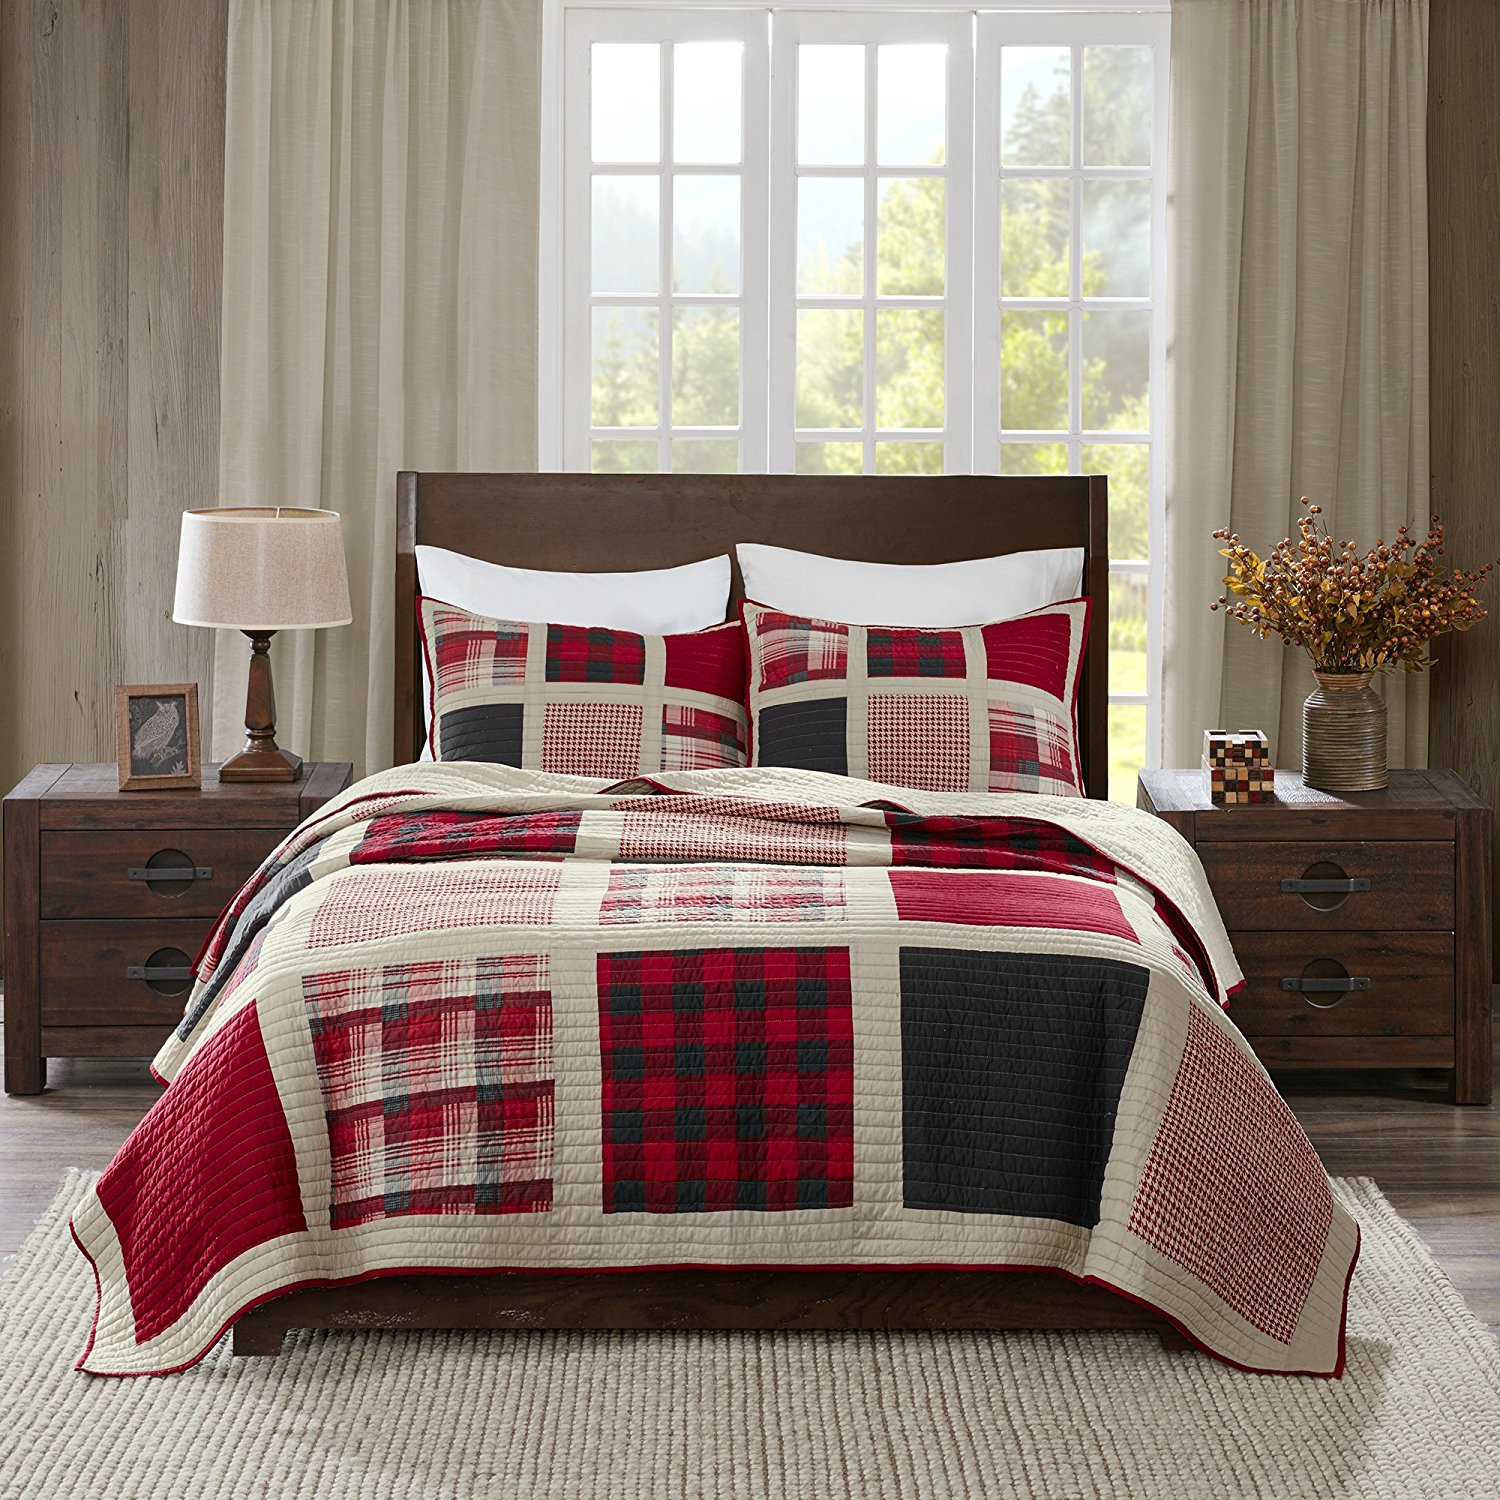 D&H 3 Piece Black Tan Red Plaid Quilt King/Cal King Set, Cabin Themed Bedding Tartan Checked Patern Checkered Lodge Southwest Western Colors Lumberjack Square Patch, Cotton